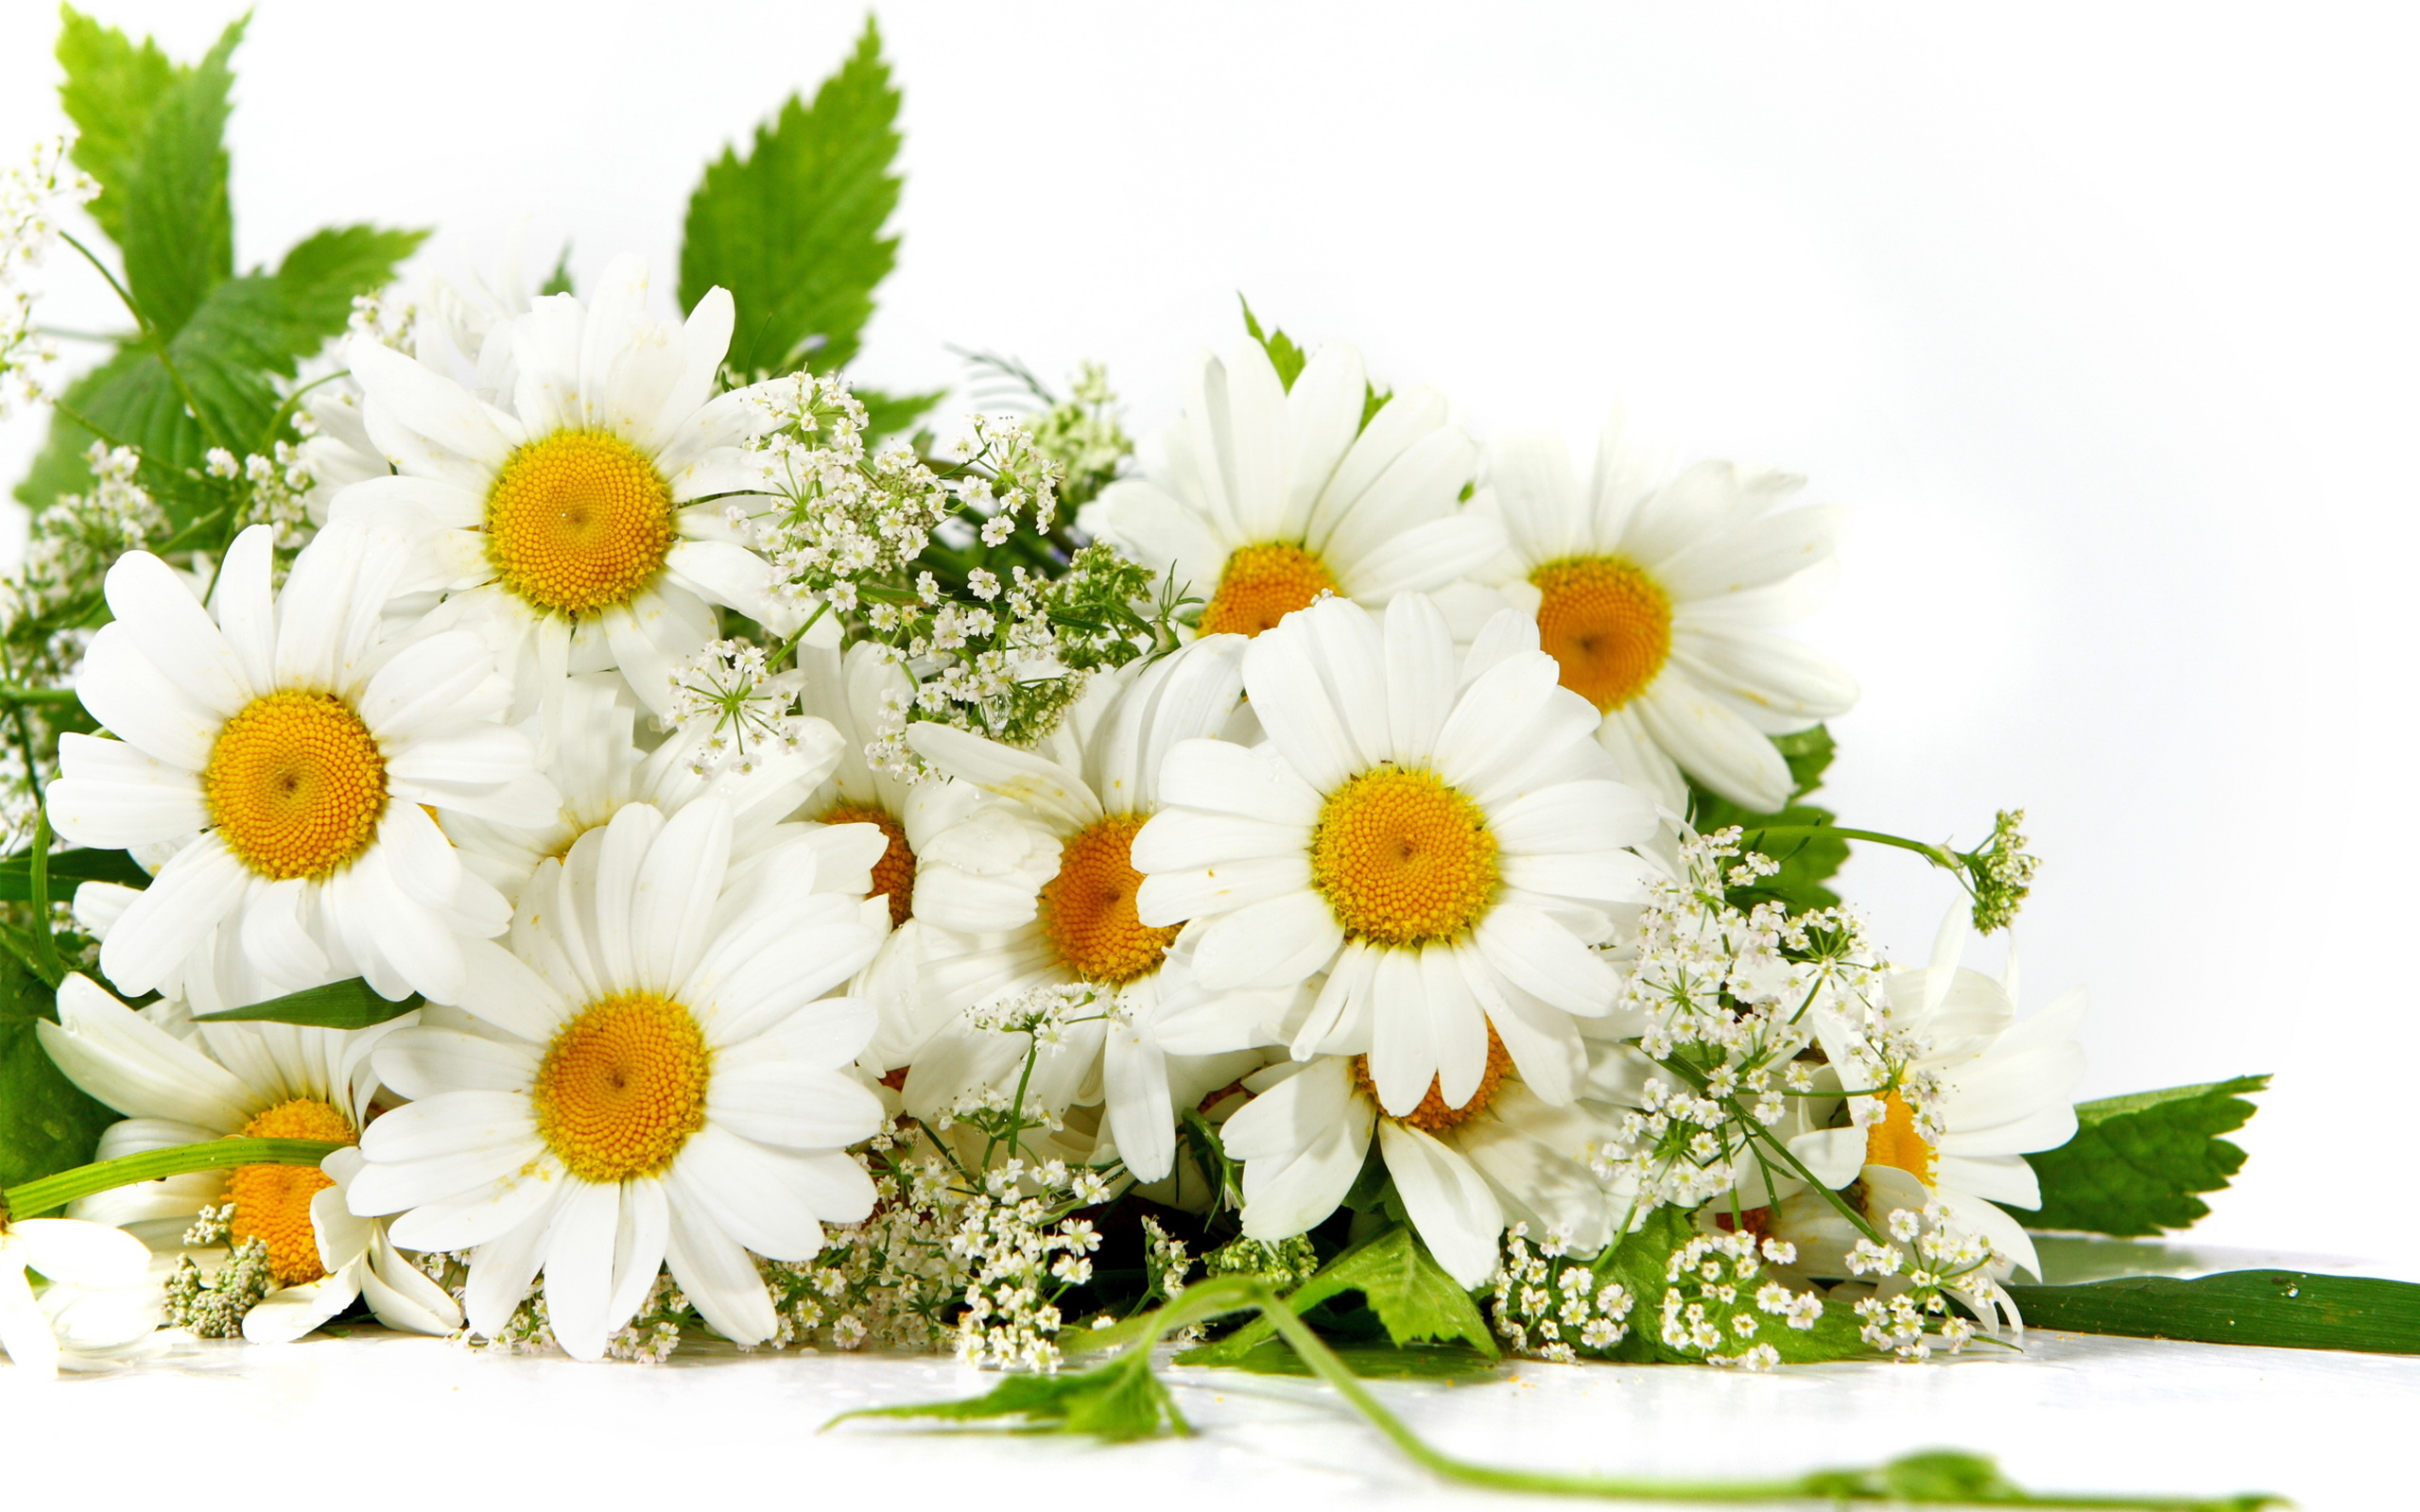 Nature_Flowers_Bouquet_of_daisies_030152_